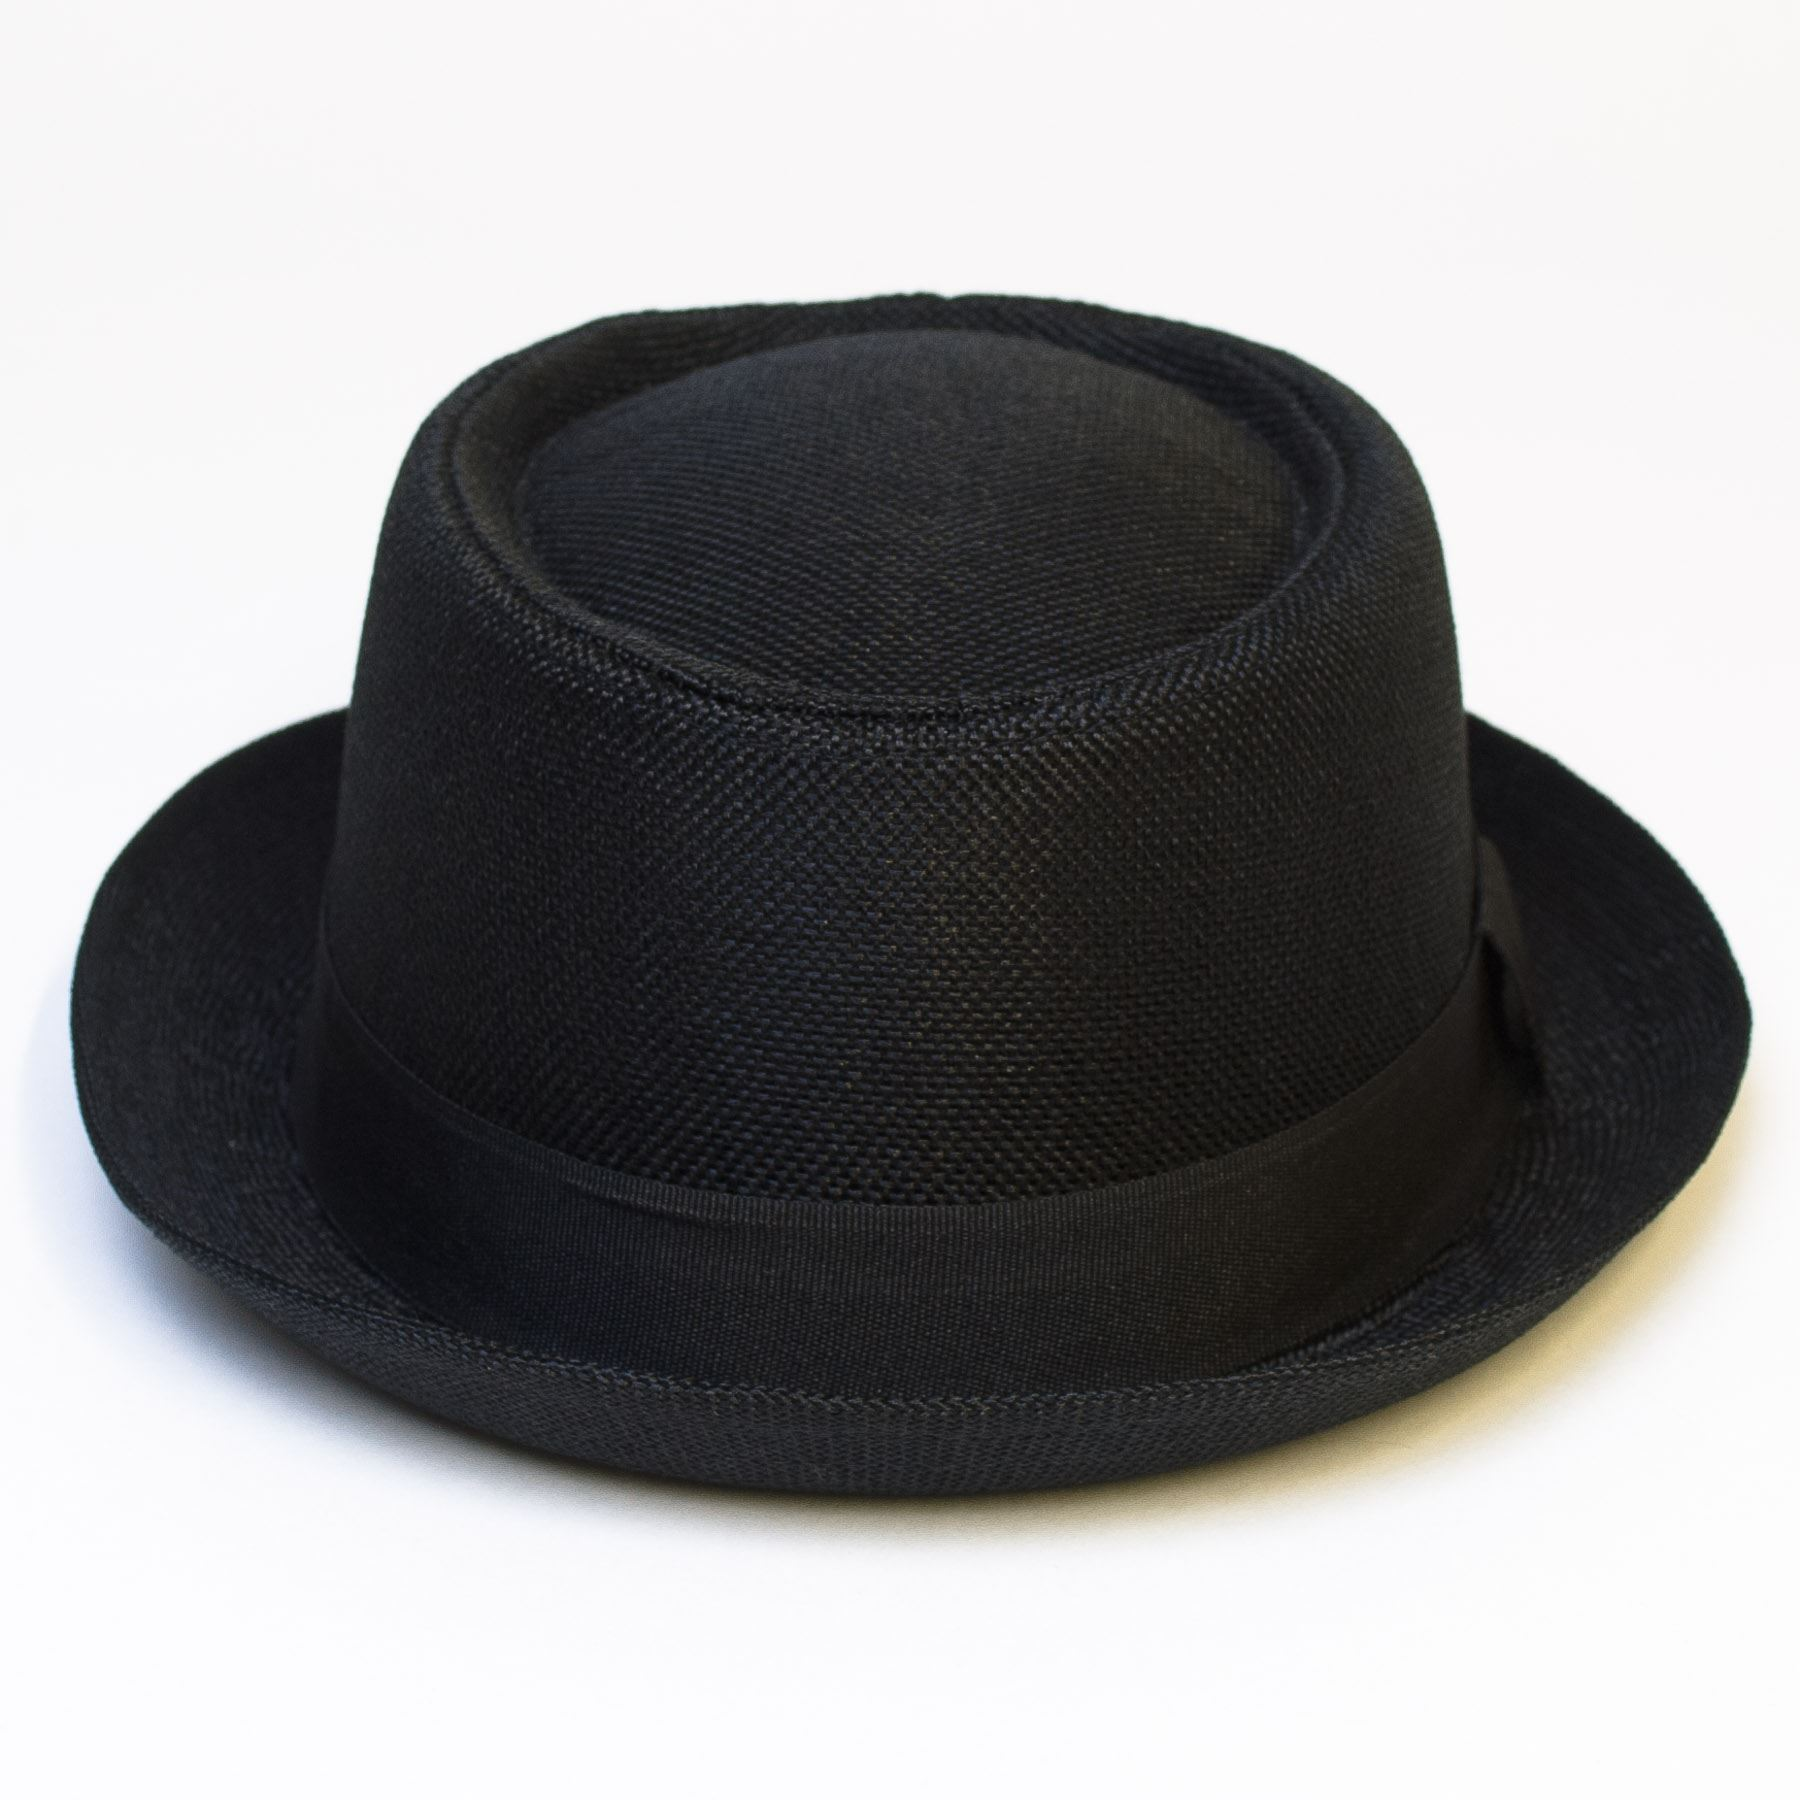 Pork-Pie-Hat-with-Black-Grosgrain-Band thumbnail 8